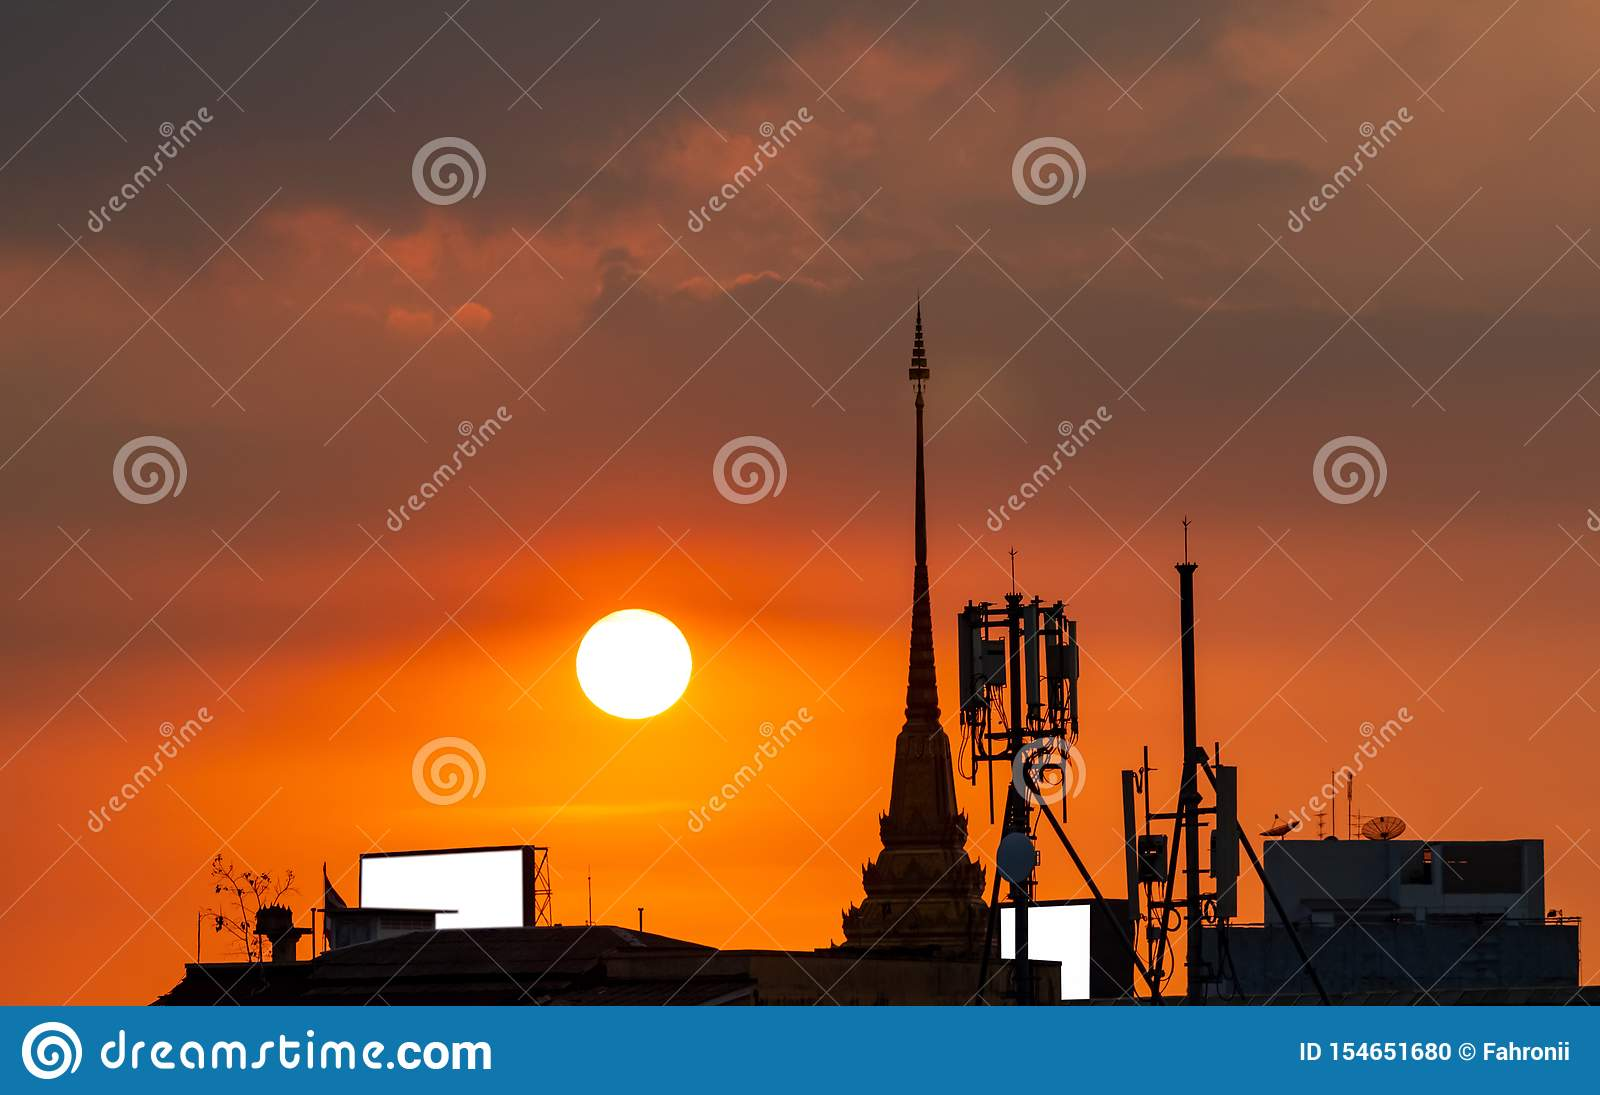 Beautiful sunset sky over the city. Silhouette temple building and telecommunication tower. Antenna on sunset sky background.